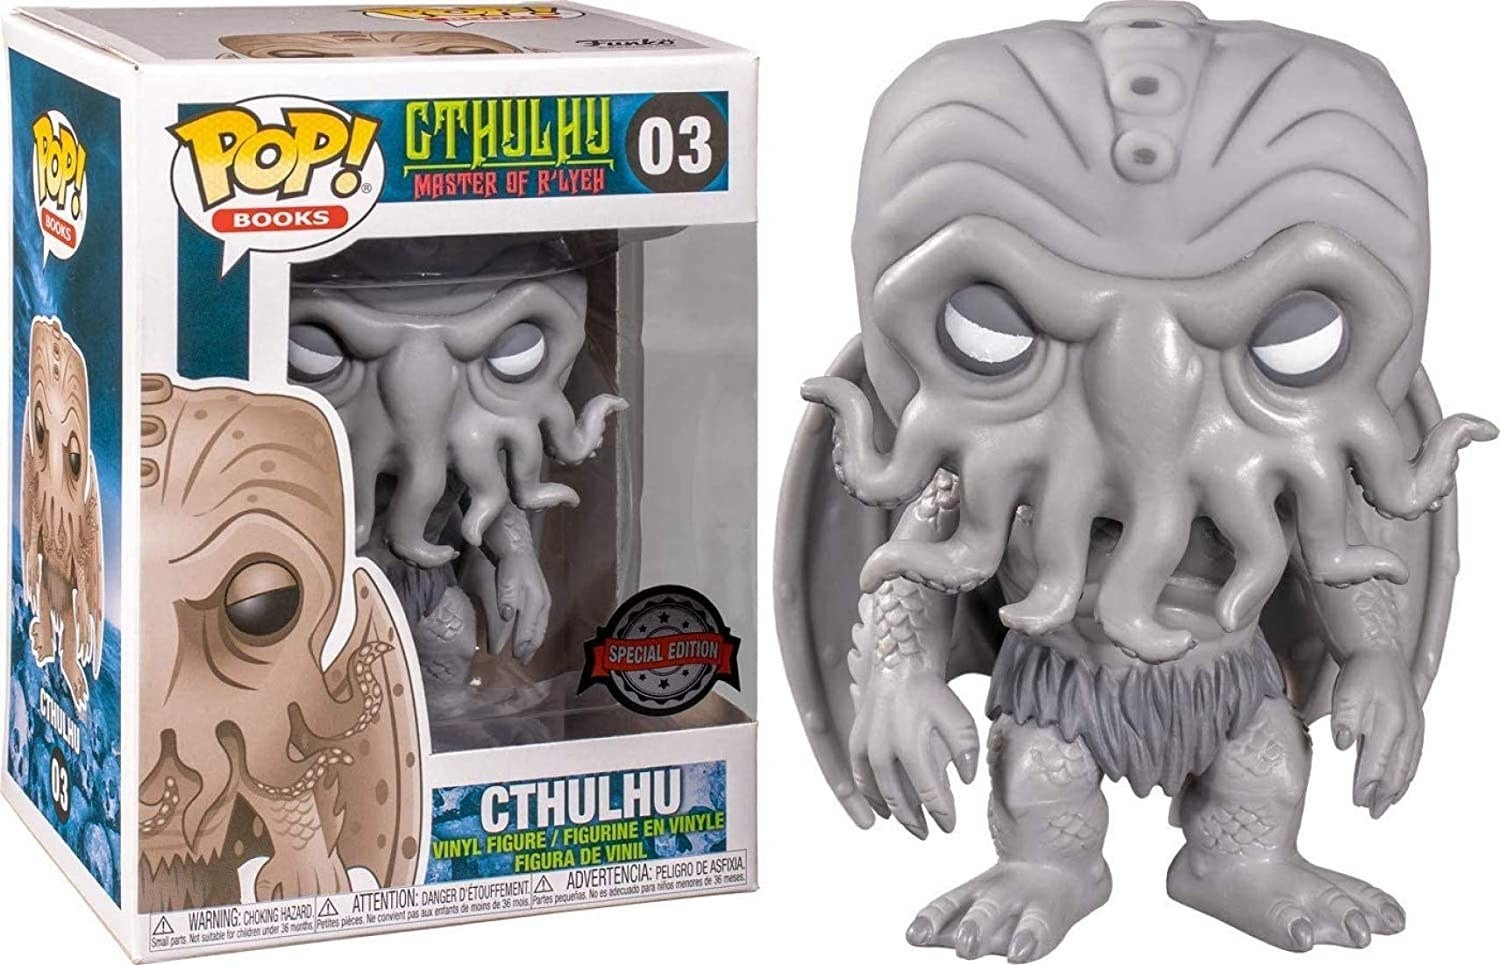 the Cthulhu funko pop action figure